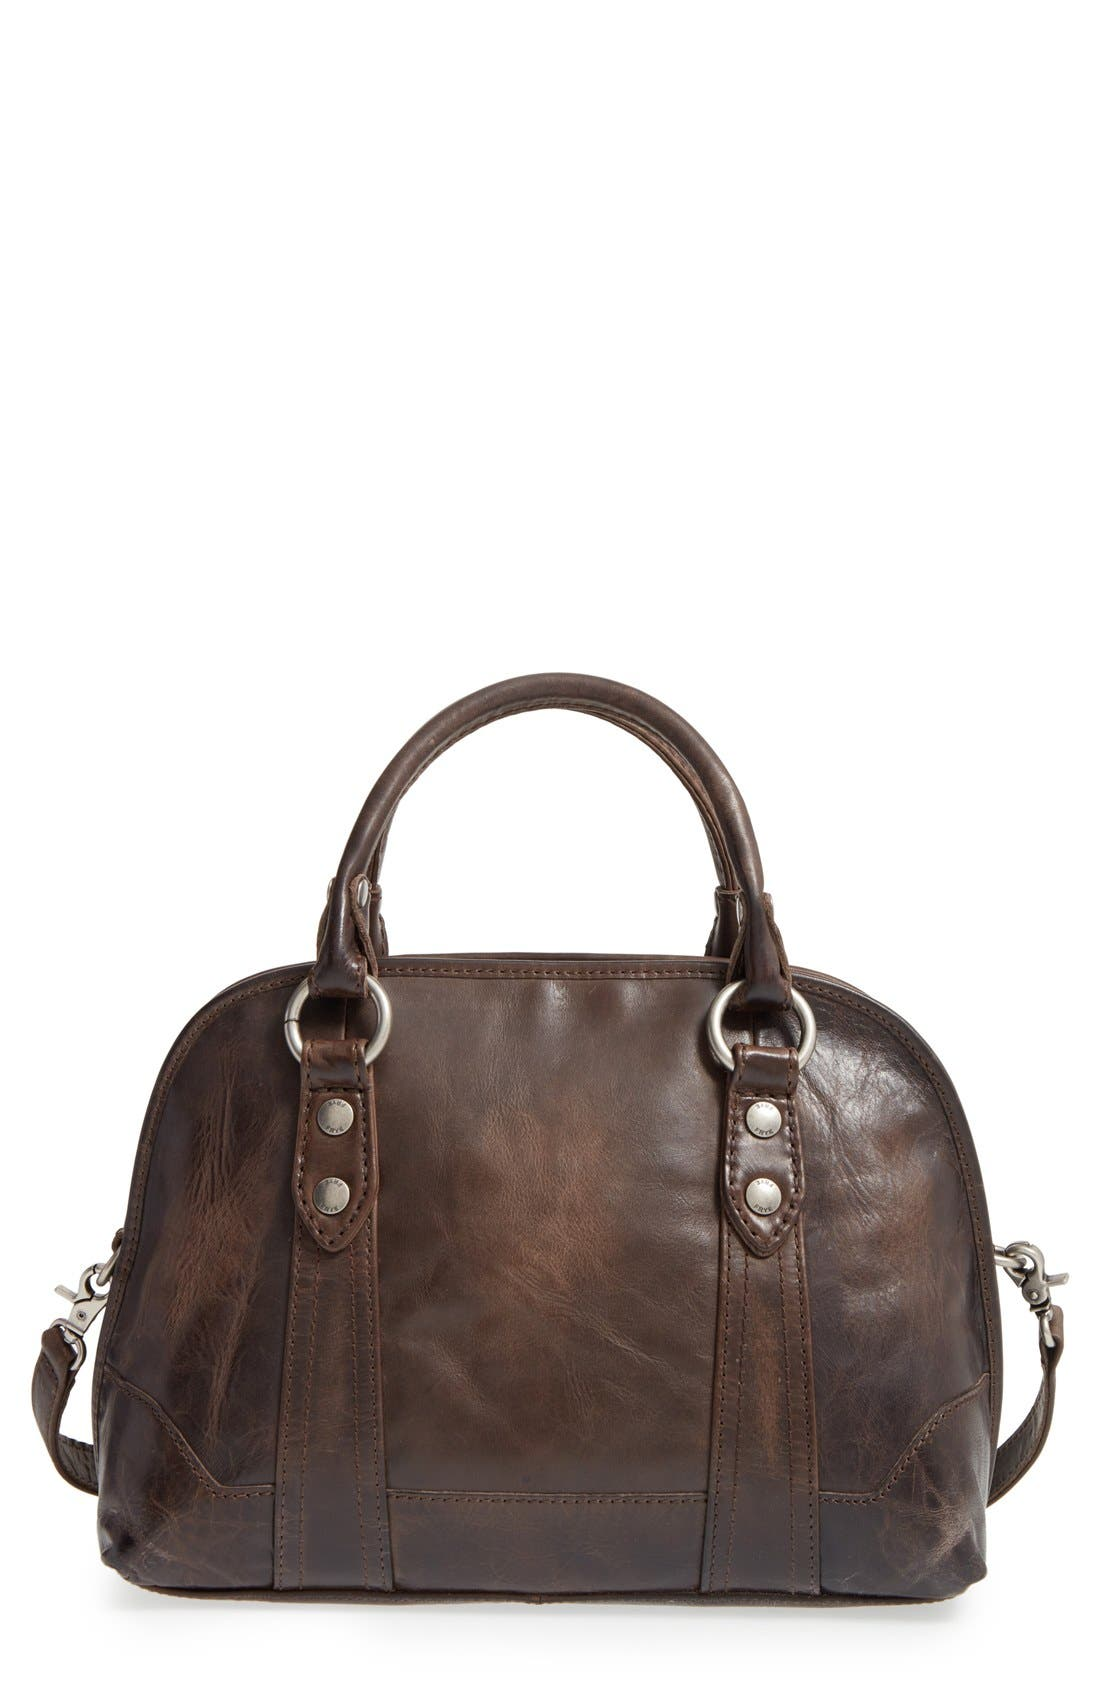 'Melissa' Domed Leather Satchel,                             Main thumbnail 1, color,                             020